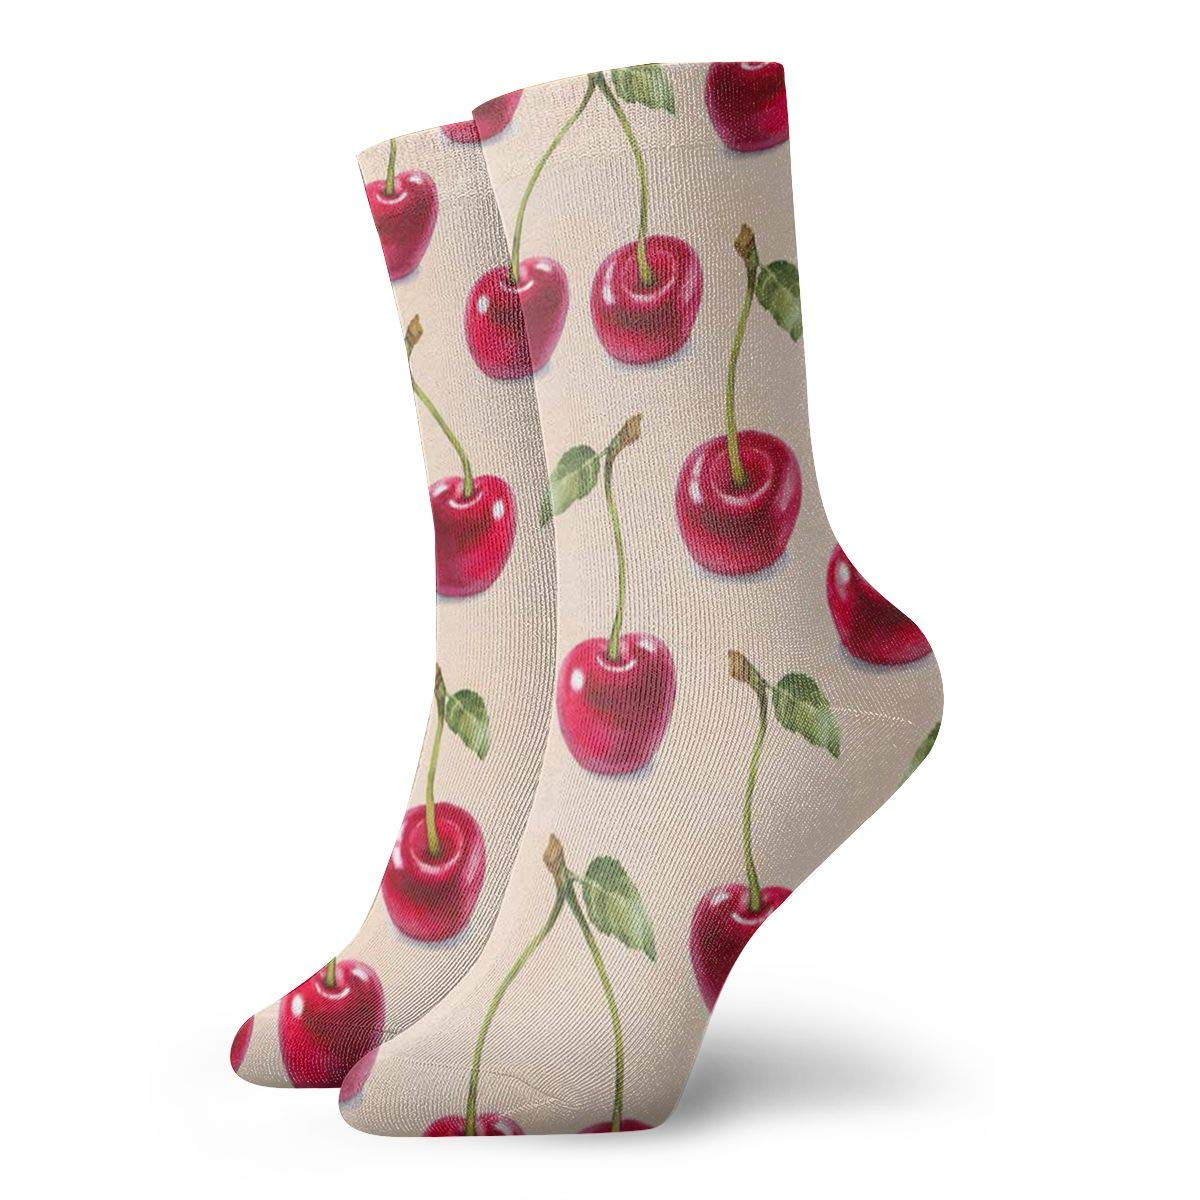 Cherry Unisex Funny Casual Crew Socks Athletic Socks For Boys Girls Kids Teenagers